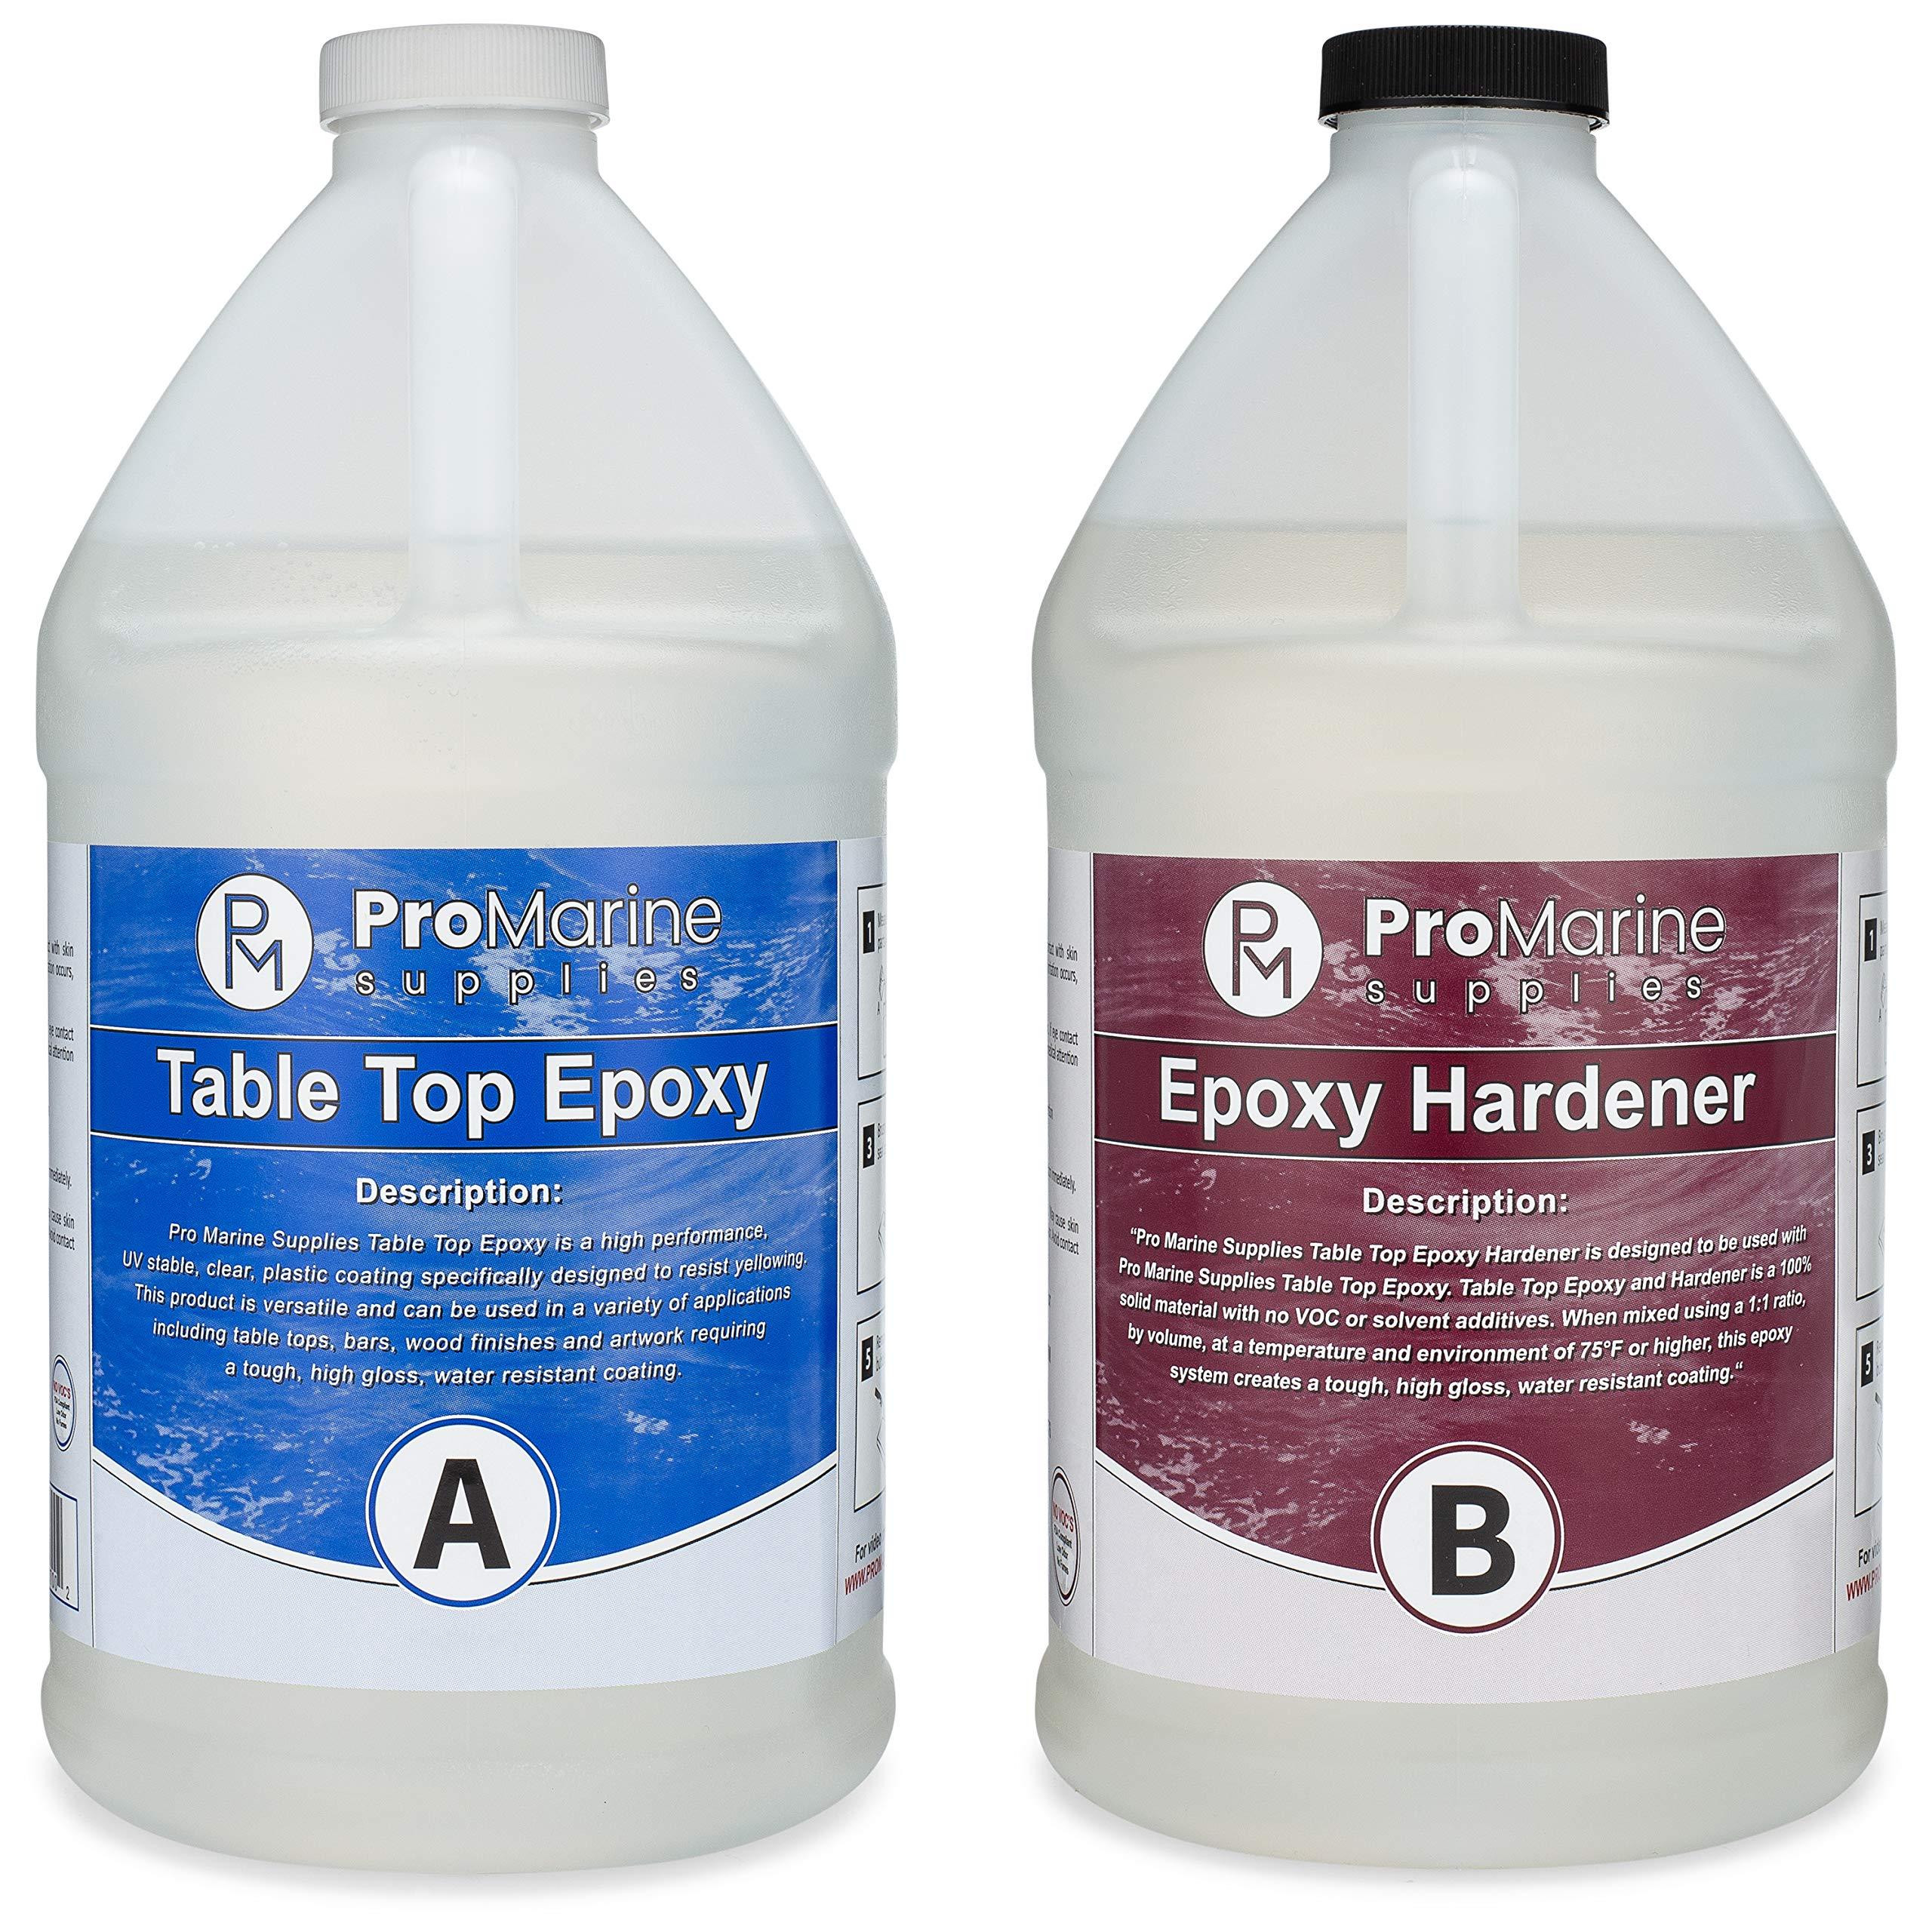 Crystal Clear Bar Table Top Epoxy Resin Coating for Wood Tabletop - 2 Gallon Kit by Pro Marine Supplies